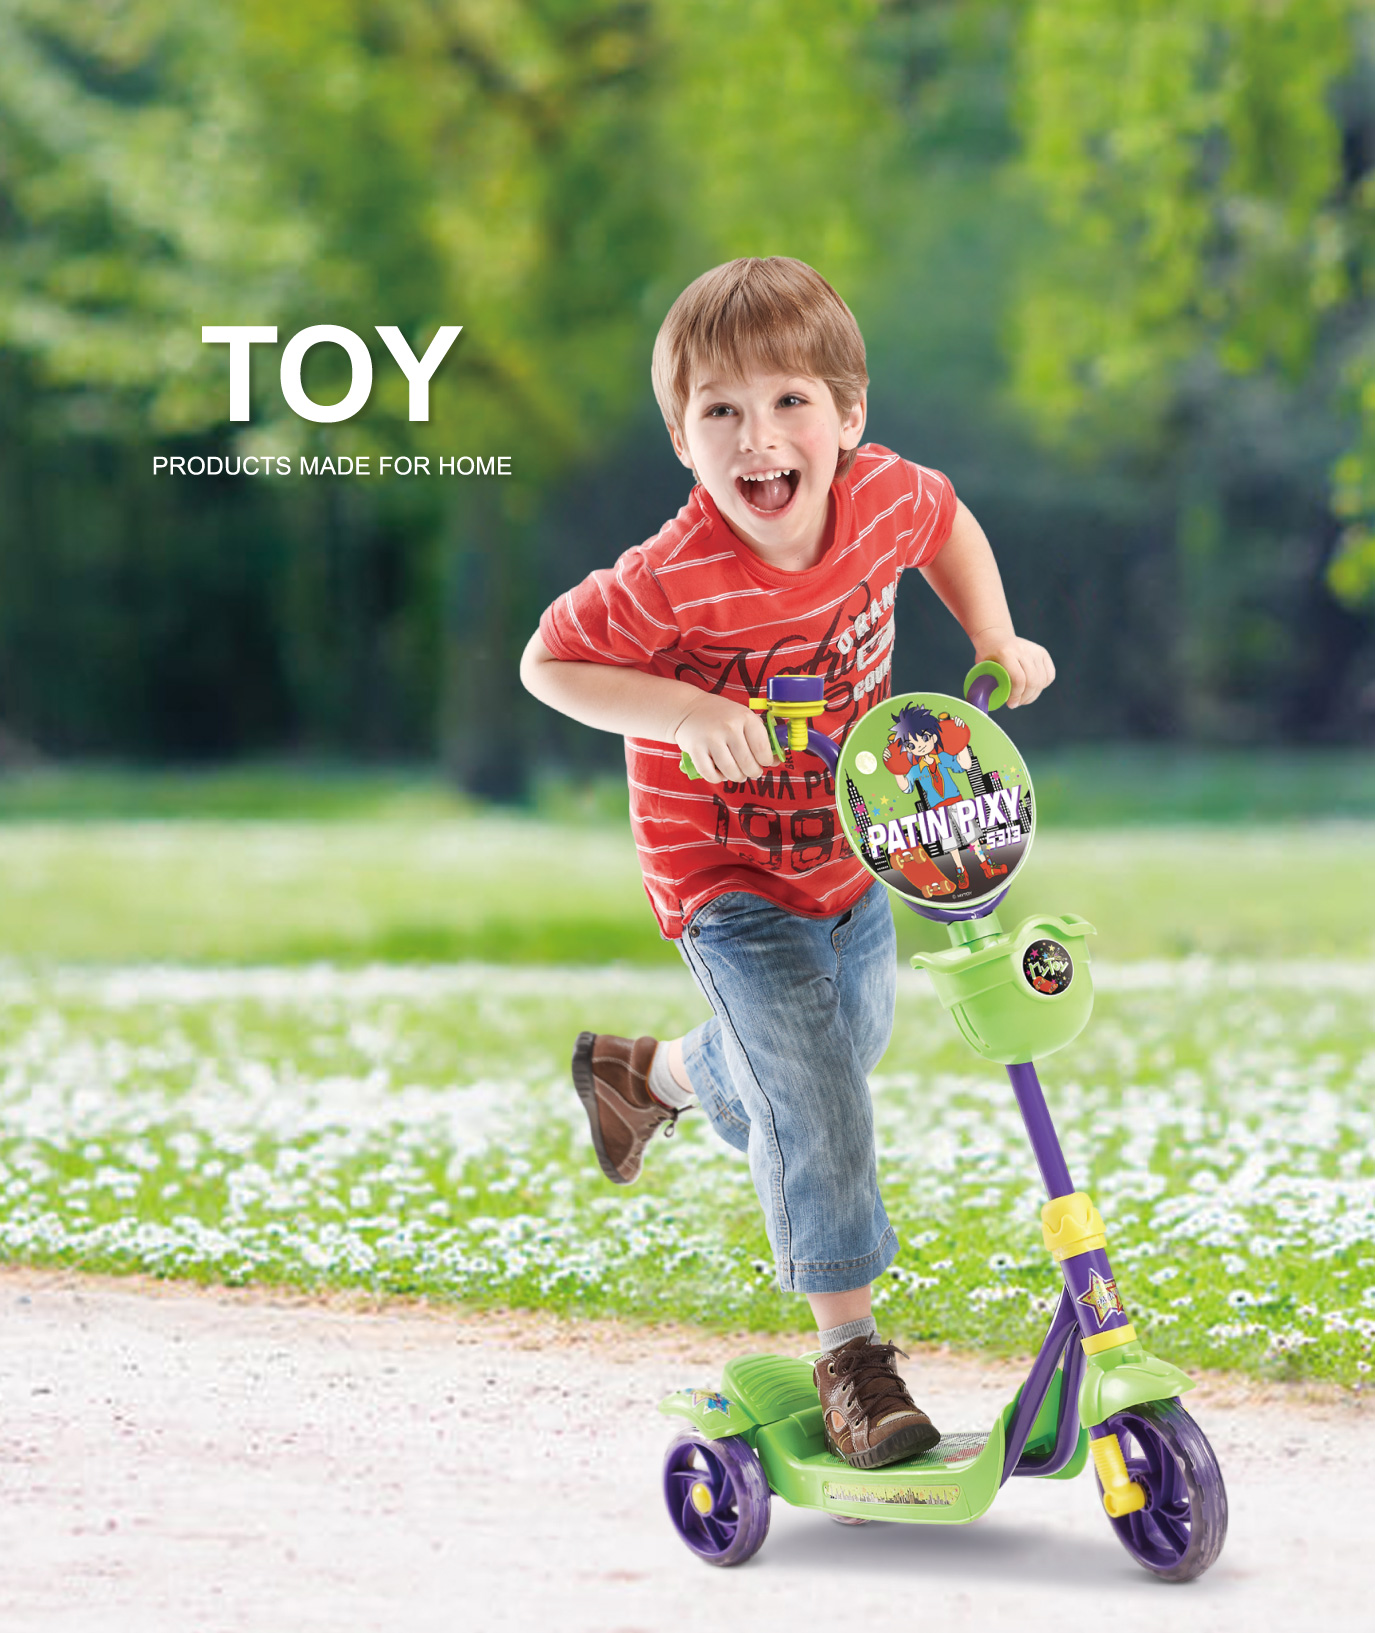 Mytek | Specialized in fan, evaporative cooler and toy